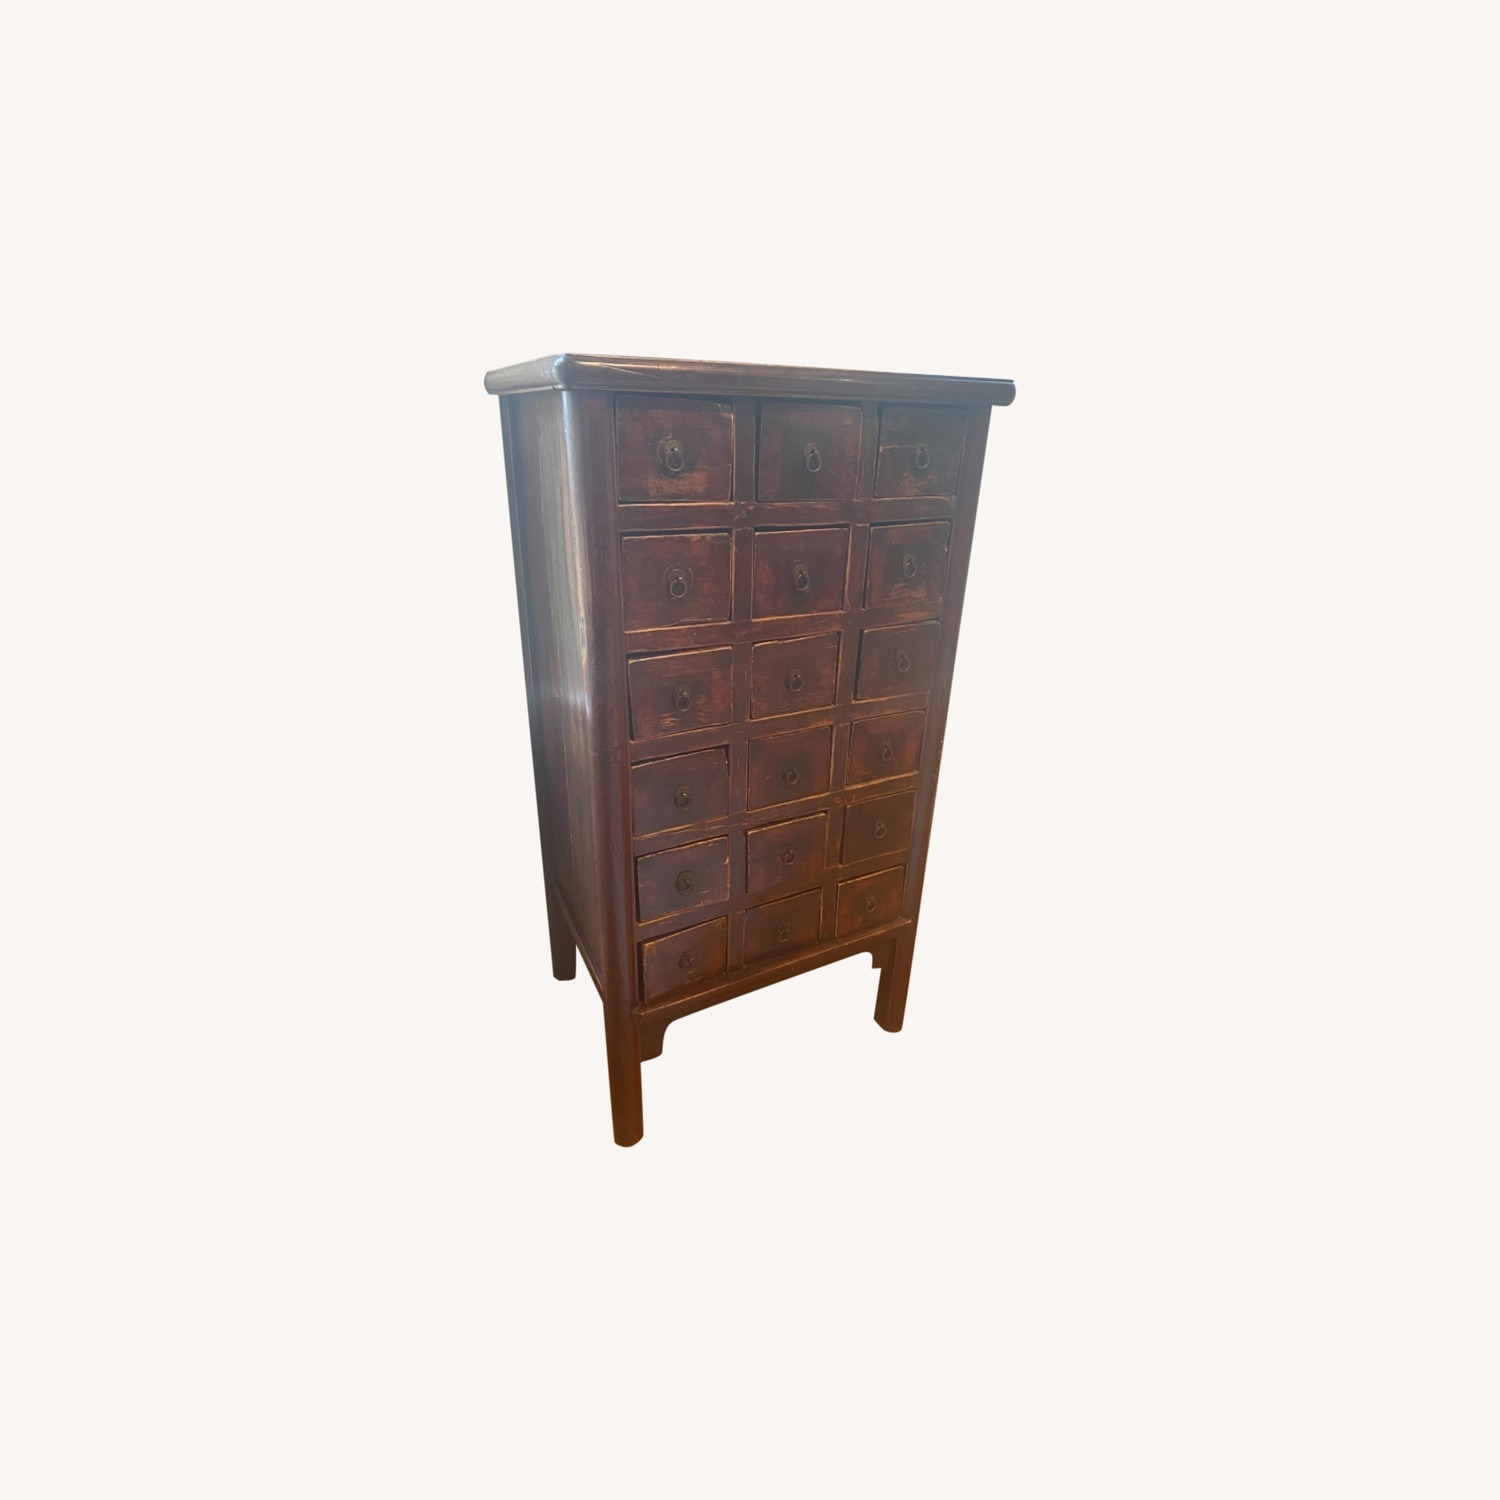 19th Century Chinese Apothecary Cabinet - image-0